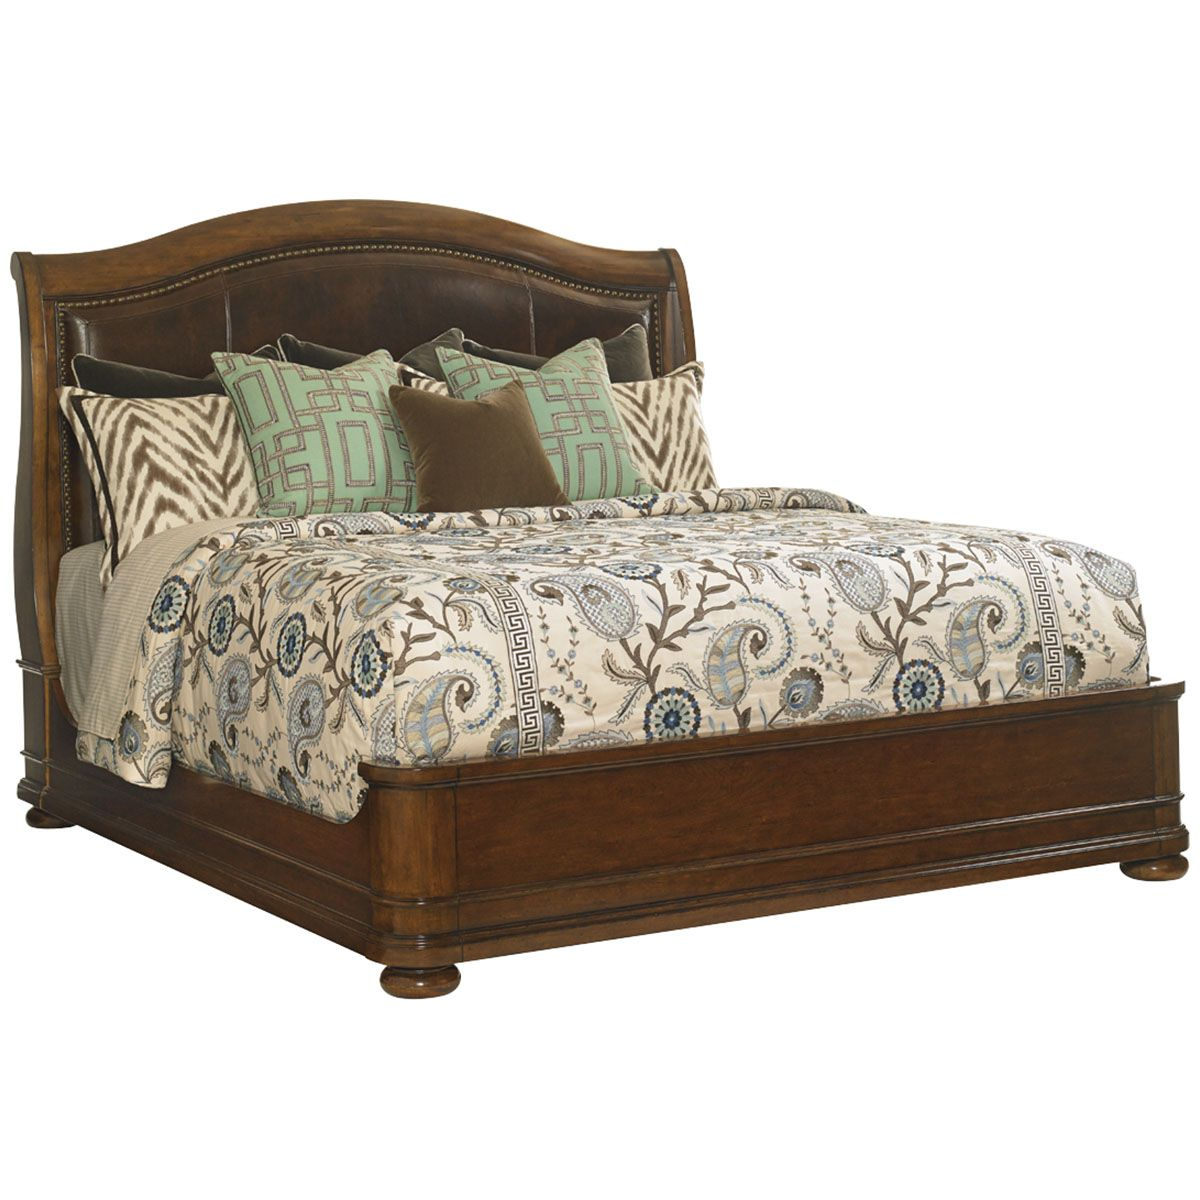 Lexington Bedroom Sets Brilliant Lexington Home Brands Chandler Mills Sleigh Bed 66 King 945190C Decorating Design